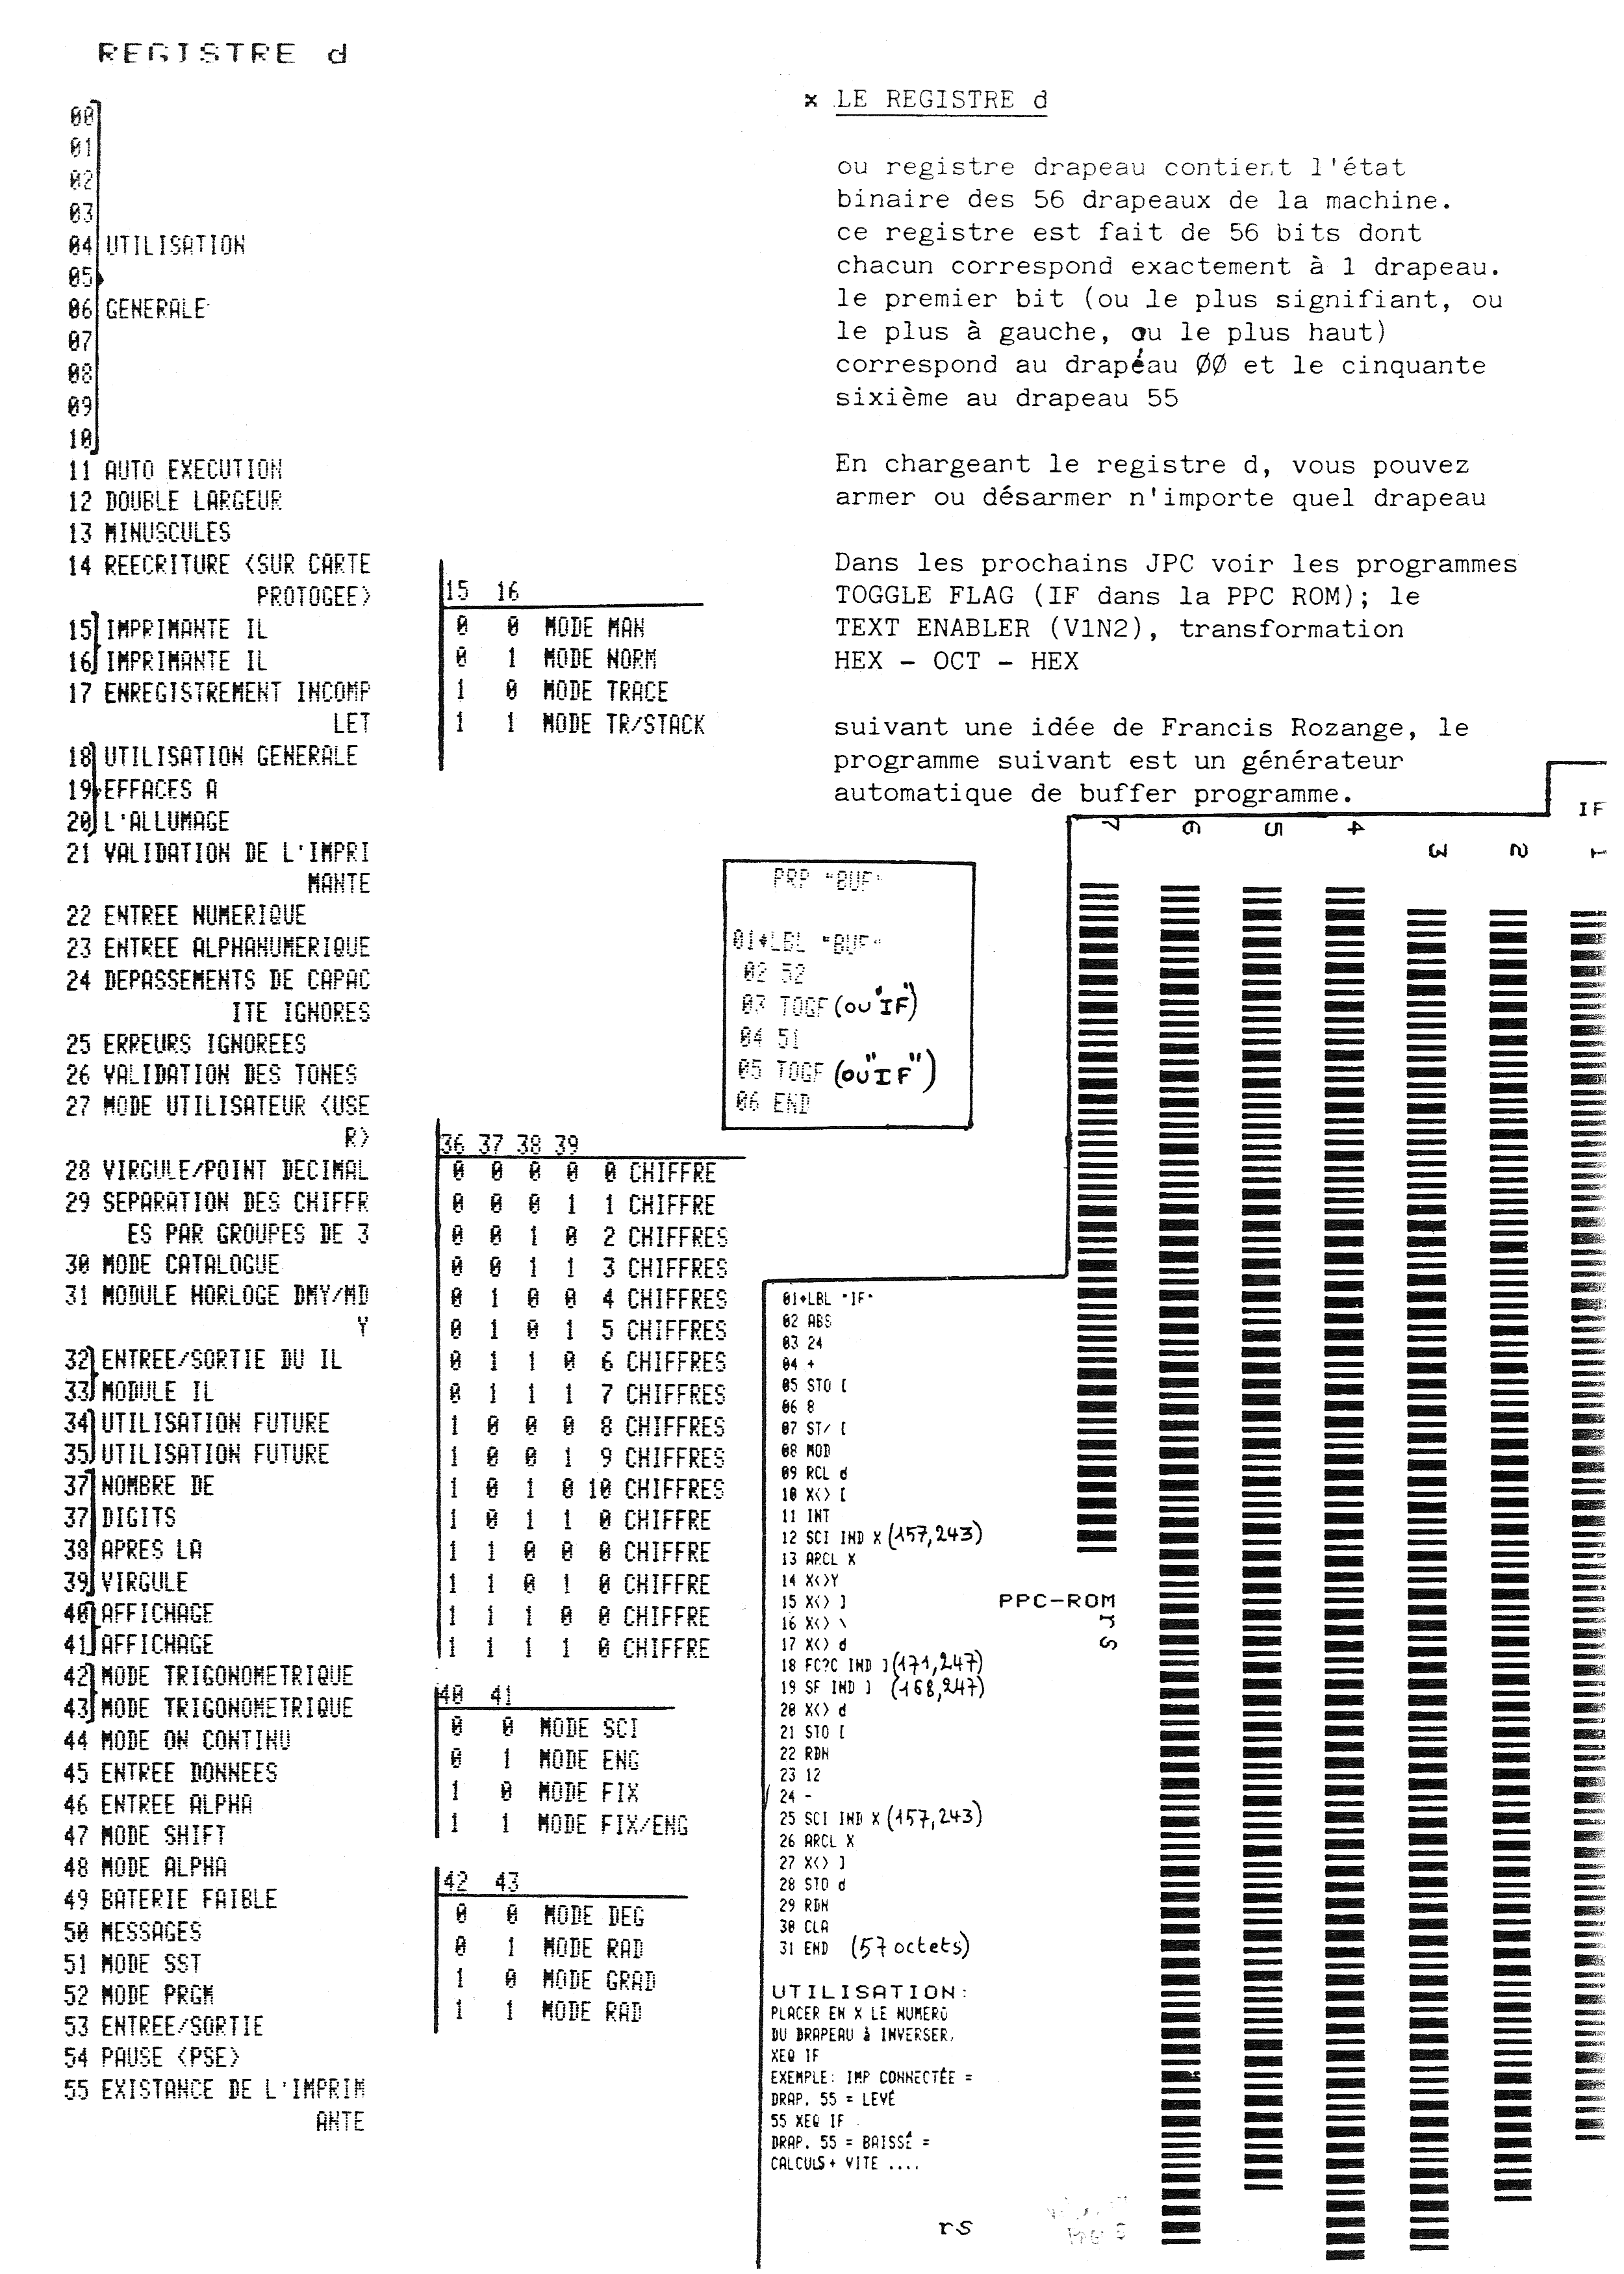 Jp-7-page-5-1000